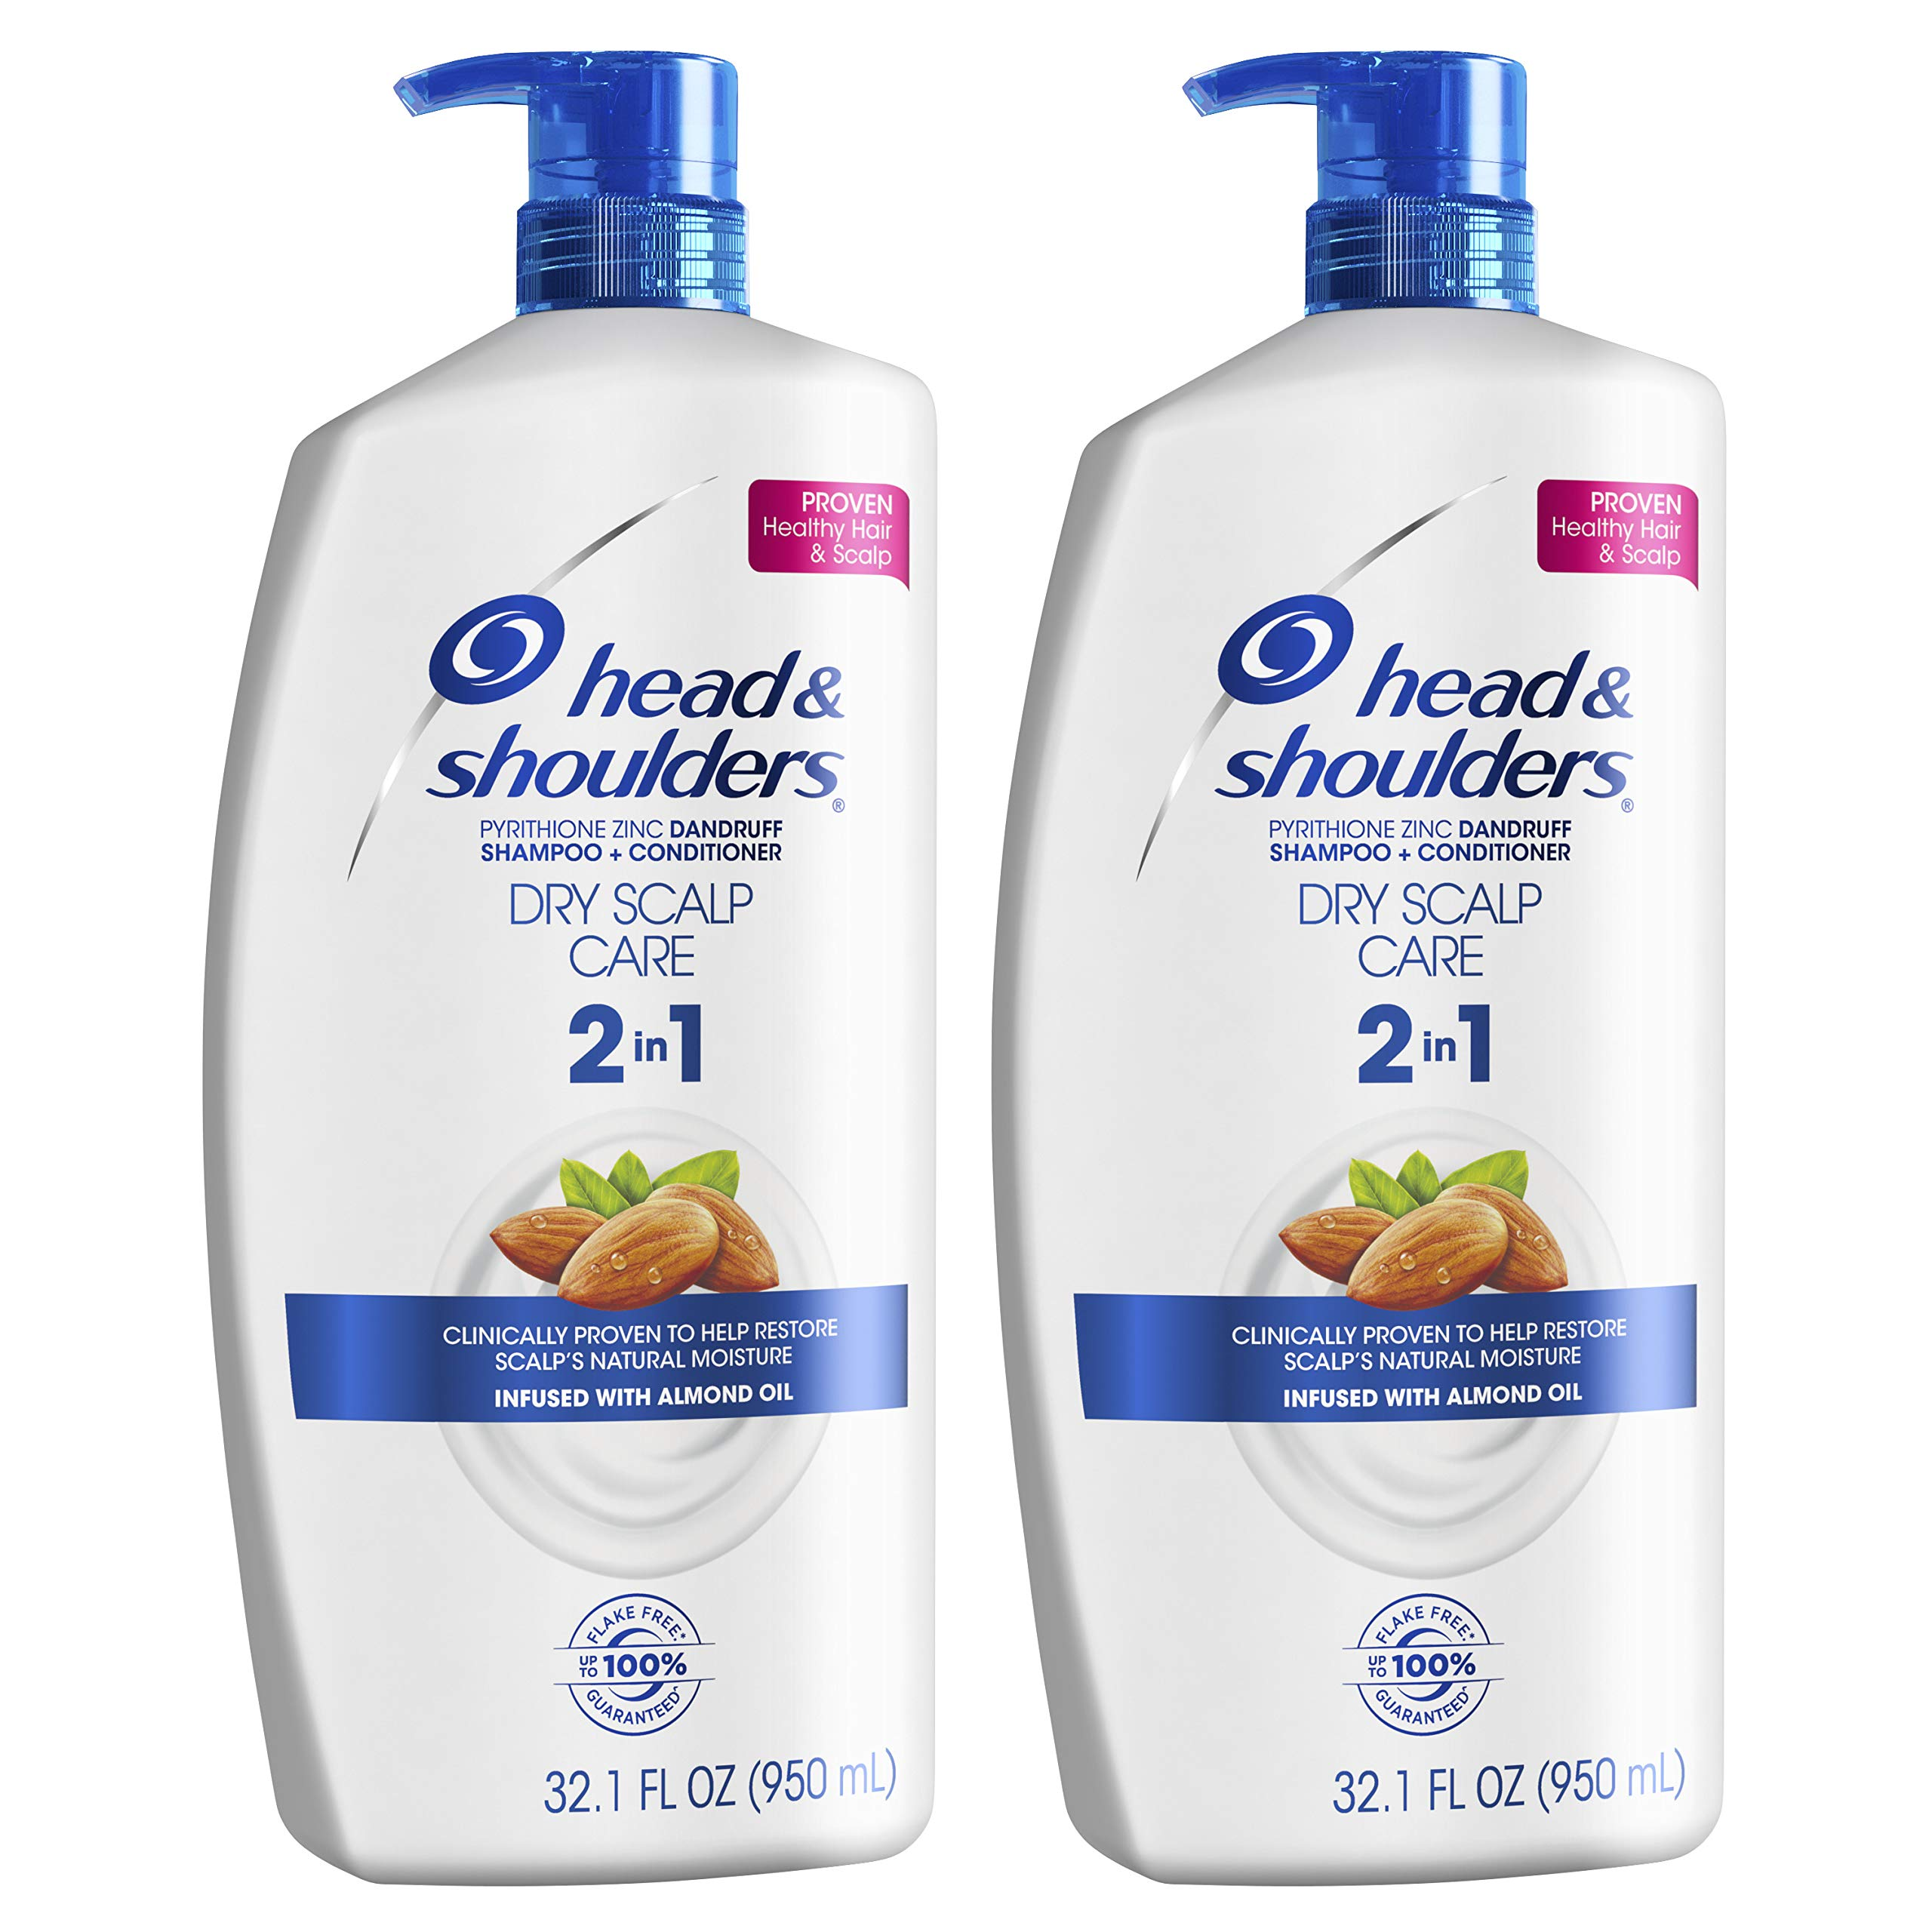 Head and Shoulders Shampoo and Conditioner 2 in 1, Anti Dandruff Treatment, Dry Scalp Care, 32.1 fl oz, Twin Pack by Head & Shoulders